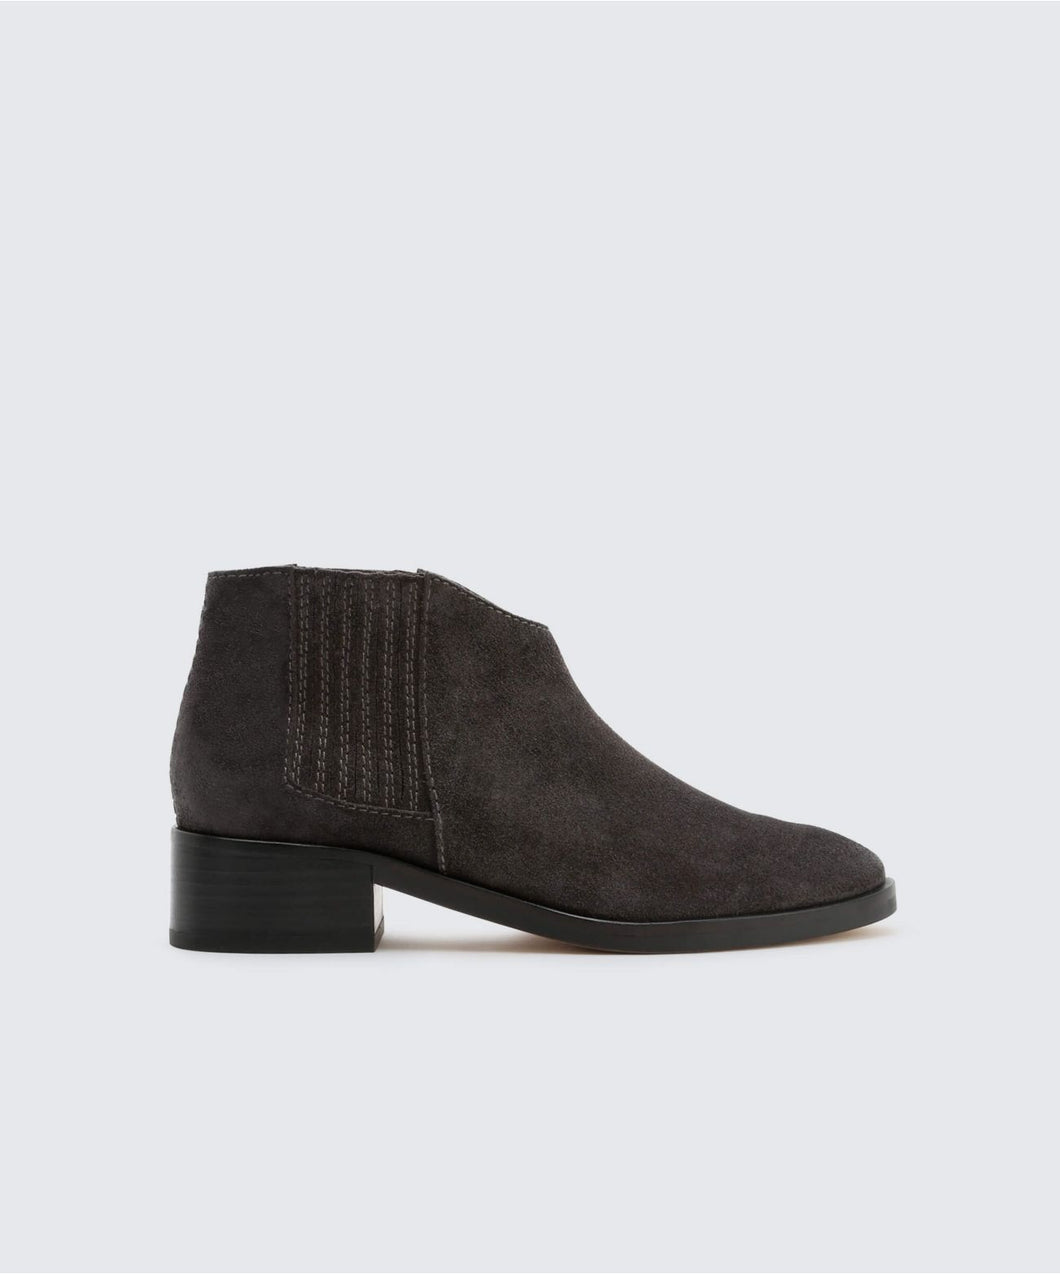 TOWNE BOOTIES ANTHRACITE -   Dolce Vita